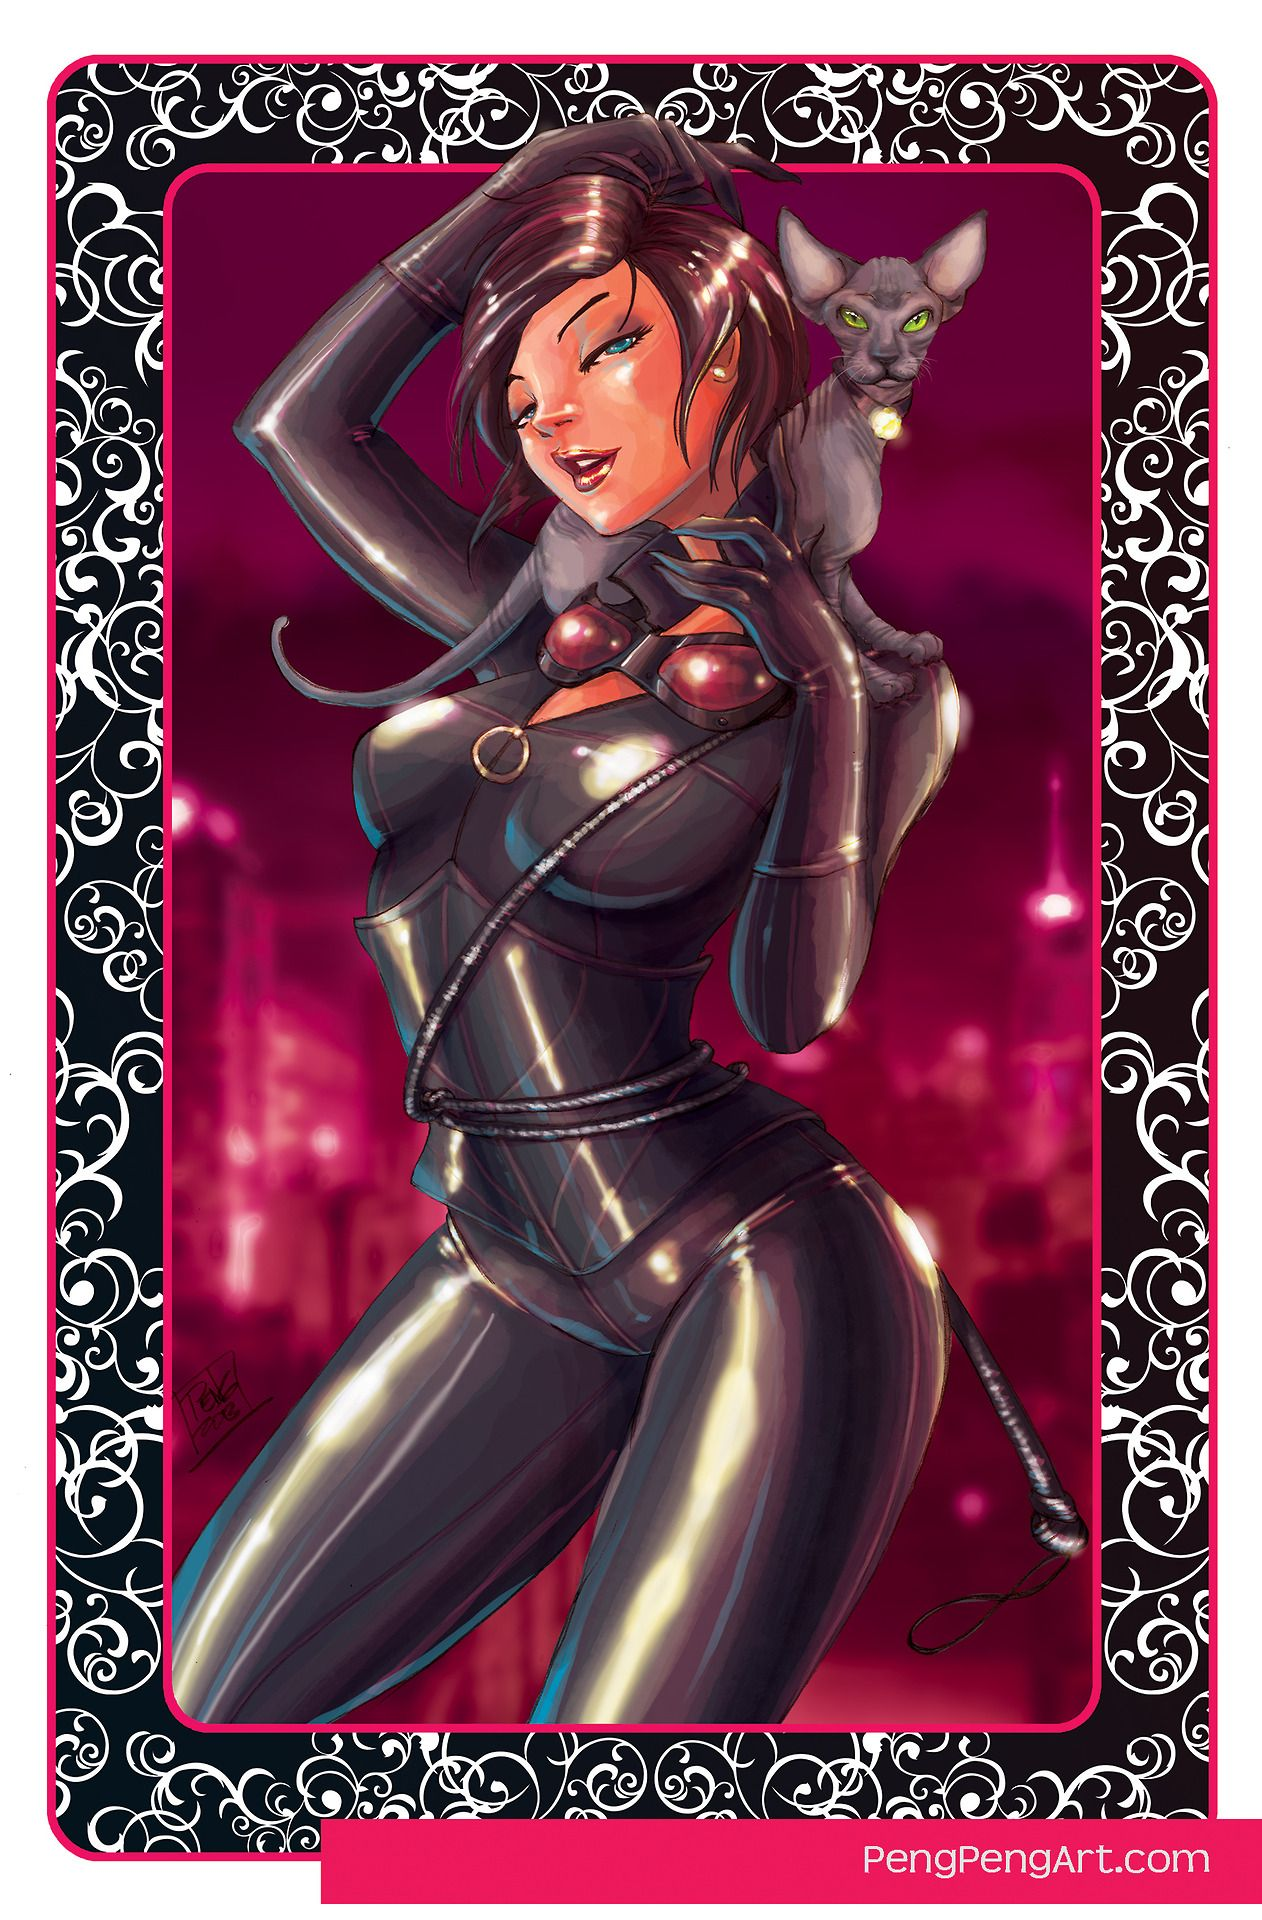 Gotham's Sirens call: Catwoman by Penelope Gaylord